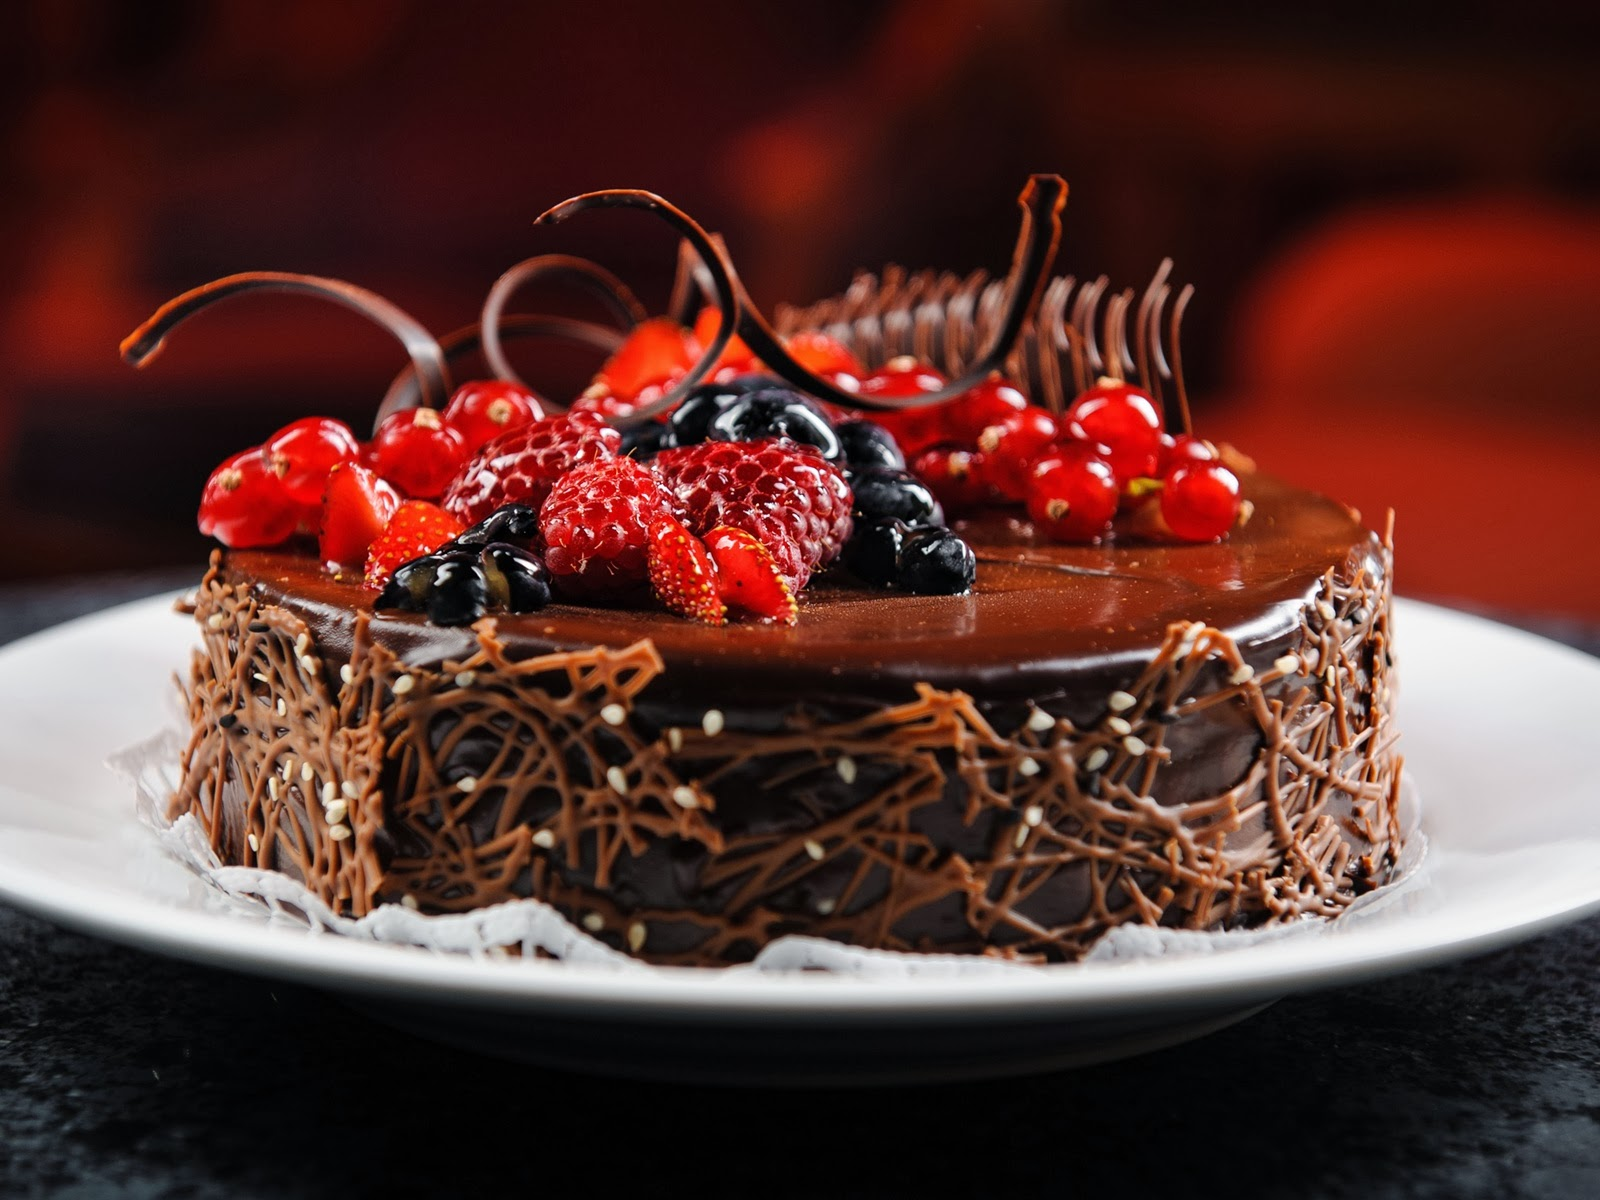 Hd Images Of Big Cake : Chocolate Cake HD Wallpapers Free Download ~ Unique Wallpapers